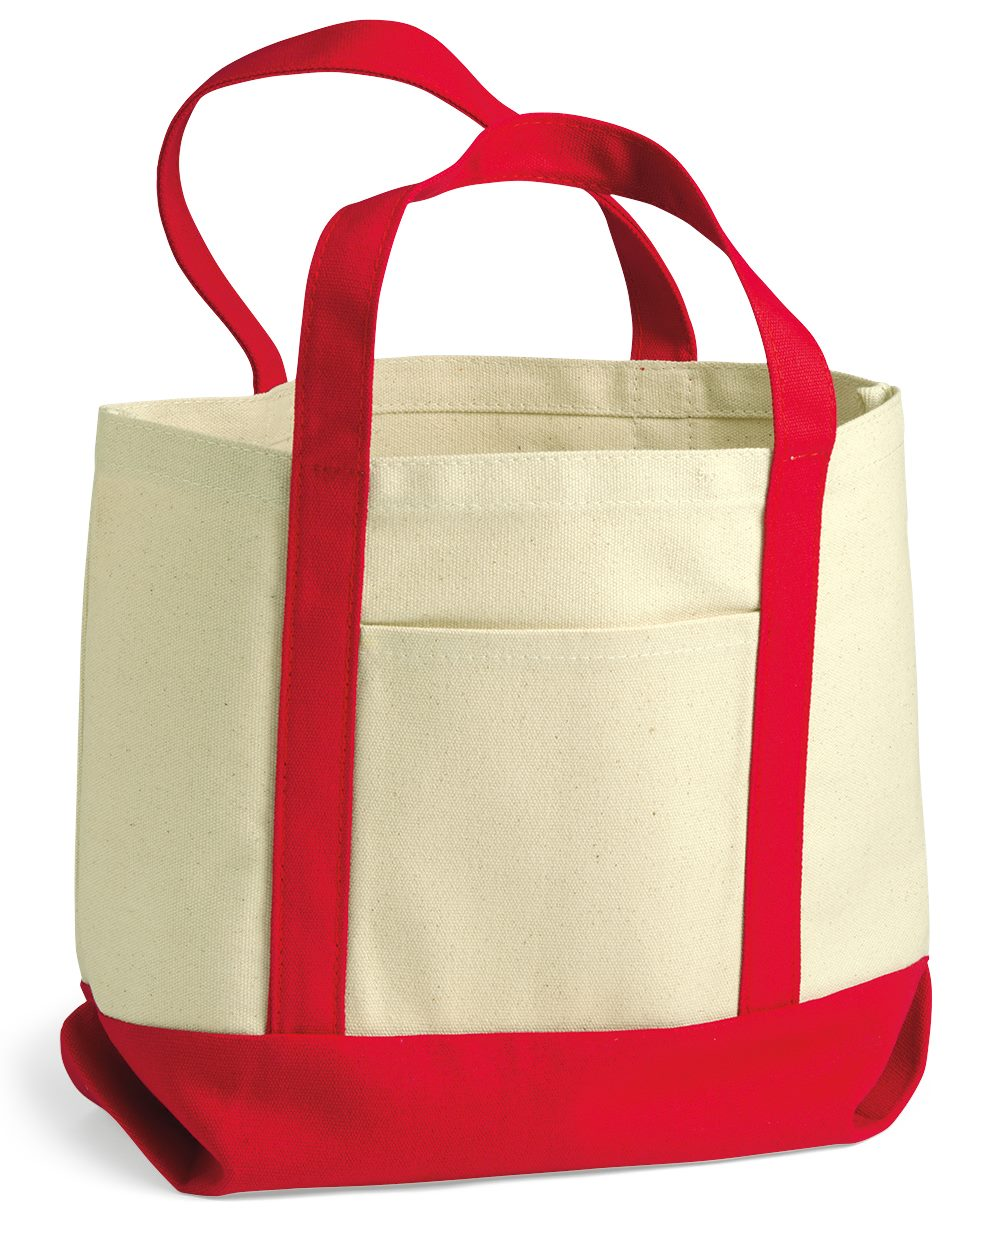 Liberty Bags 11 Ounce Small Cotton Canvas Boater Tote